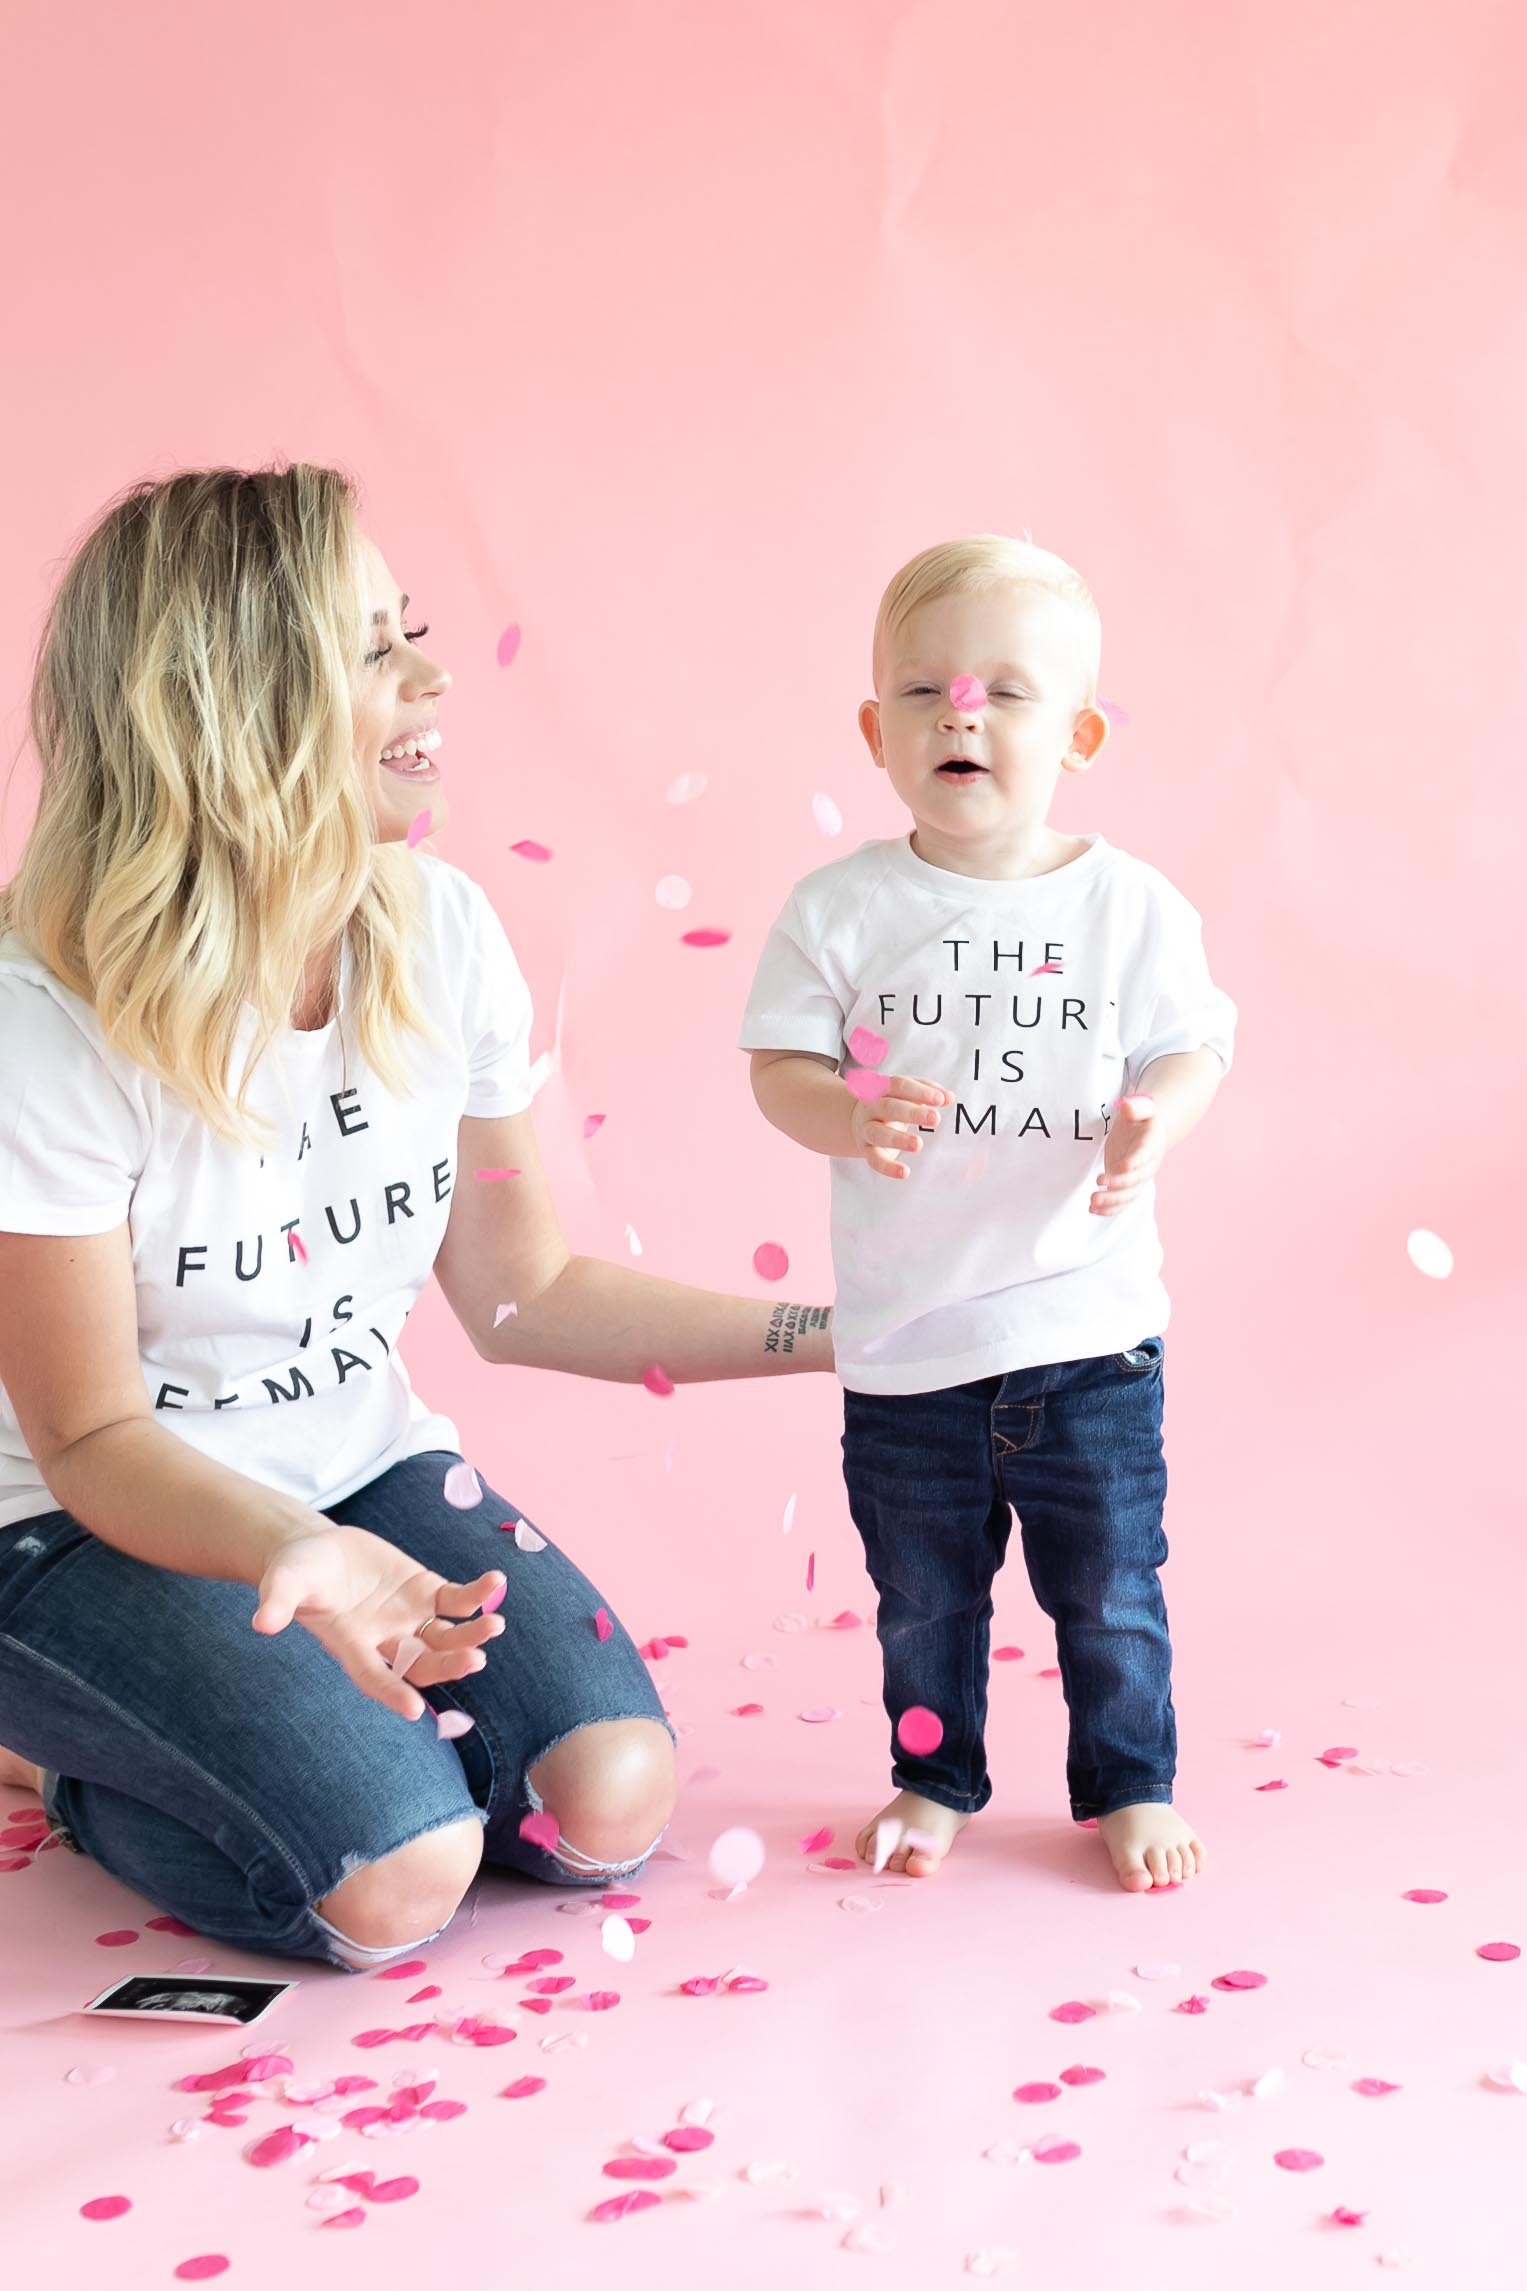 Houston lifestyle blogger Uptown with Elly Brown shares her Family Gender Reveal for her pregnancy.